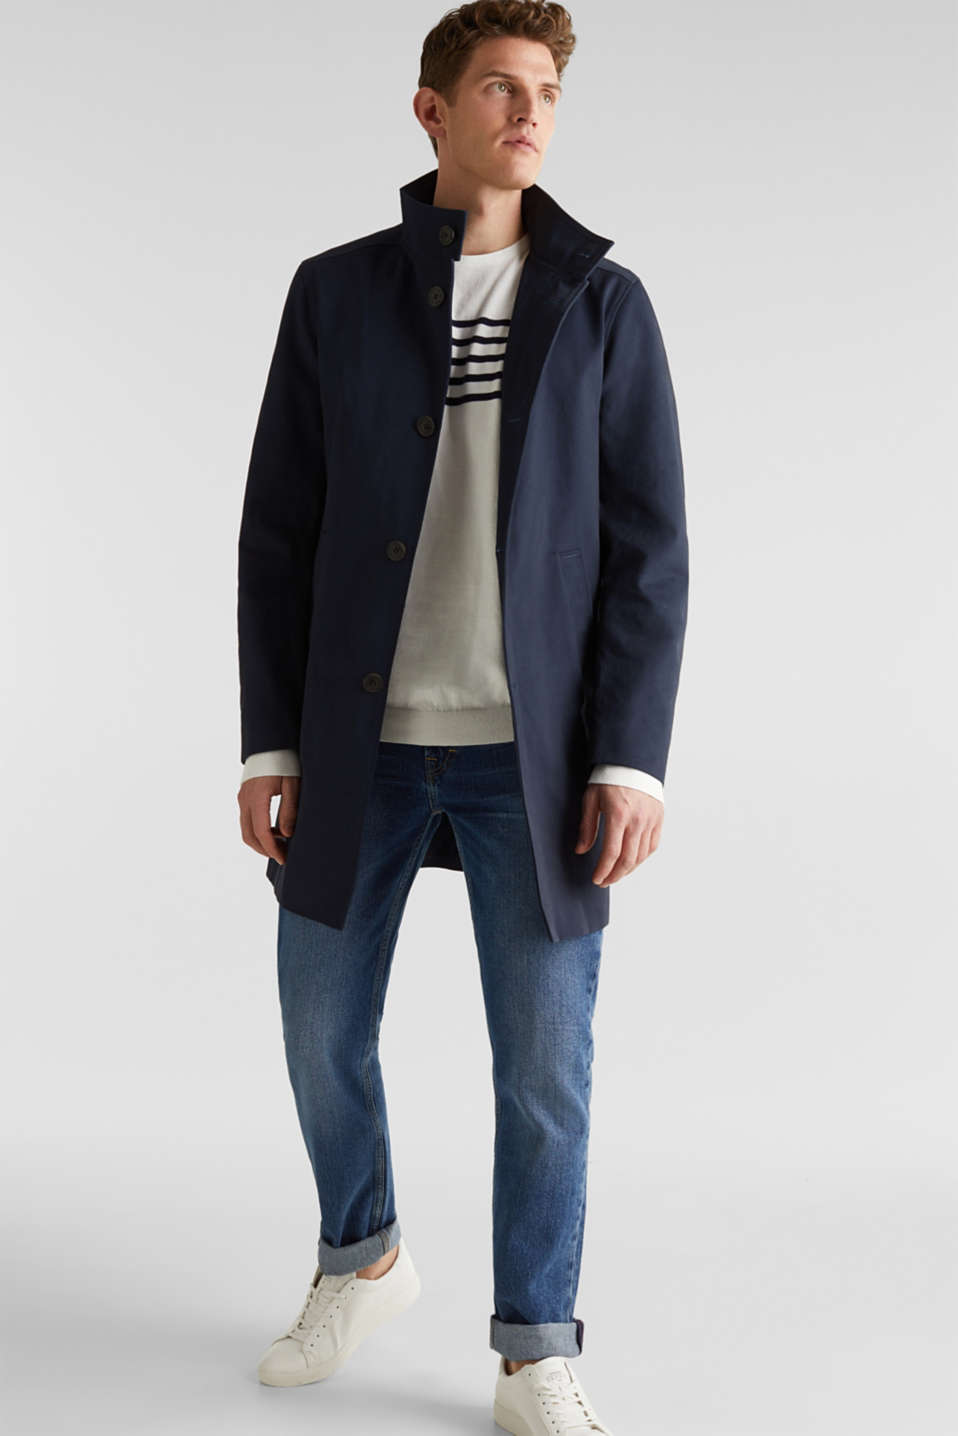 Coat with a stand-up collar, 100% cotton, DARK BLUE, detail image number 1